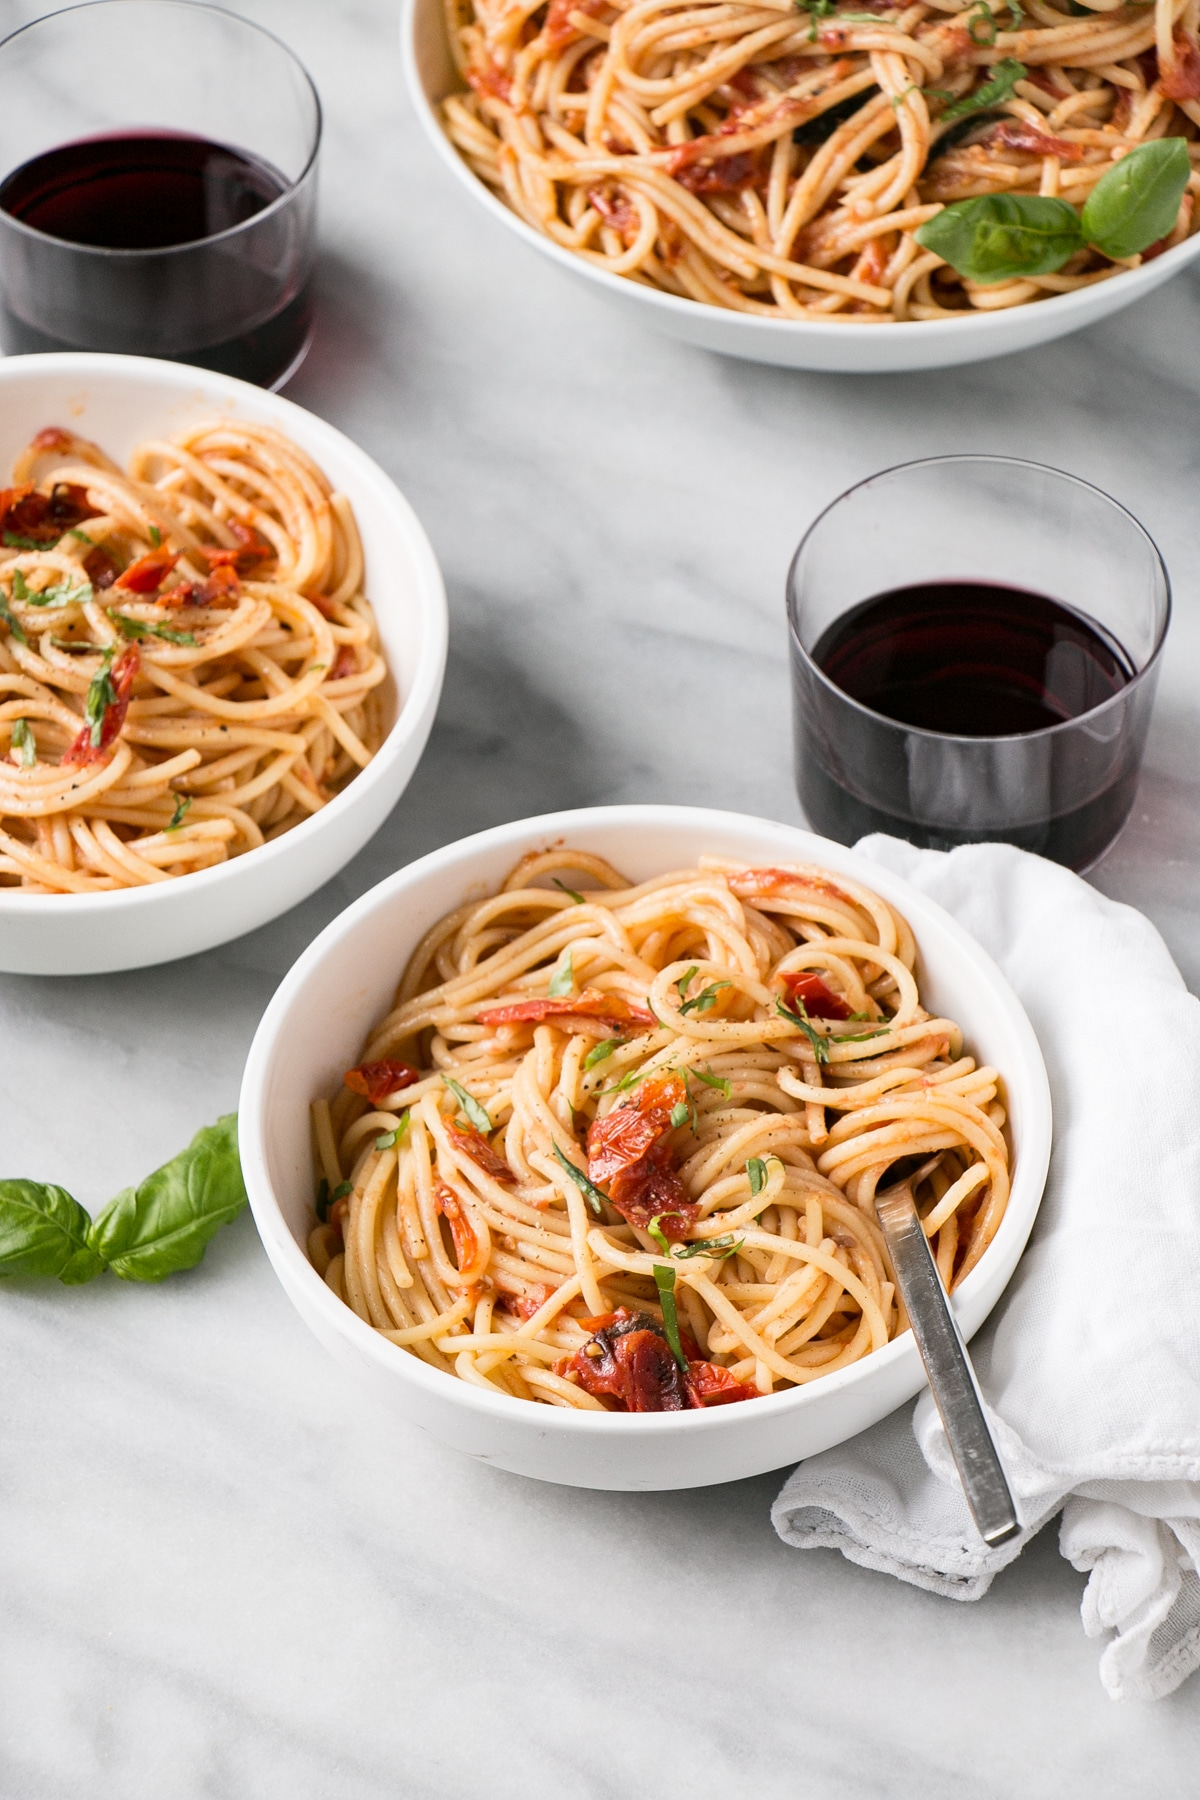 Anchovy and Tomato Pasta in a white bowl with red wine and white linen.